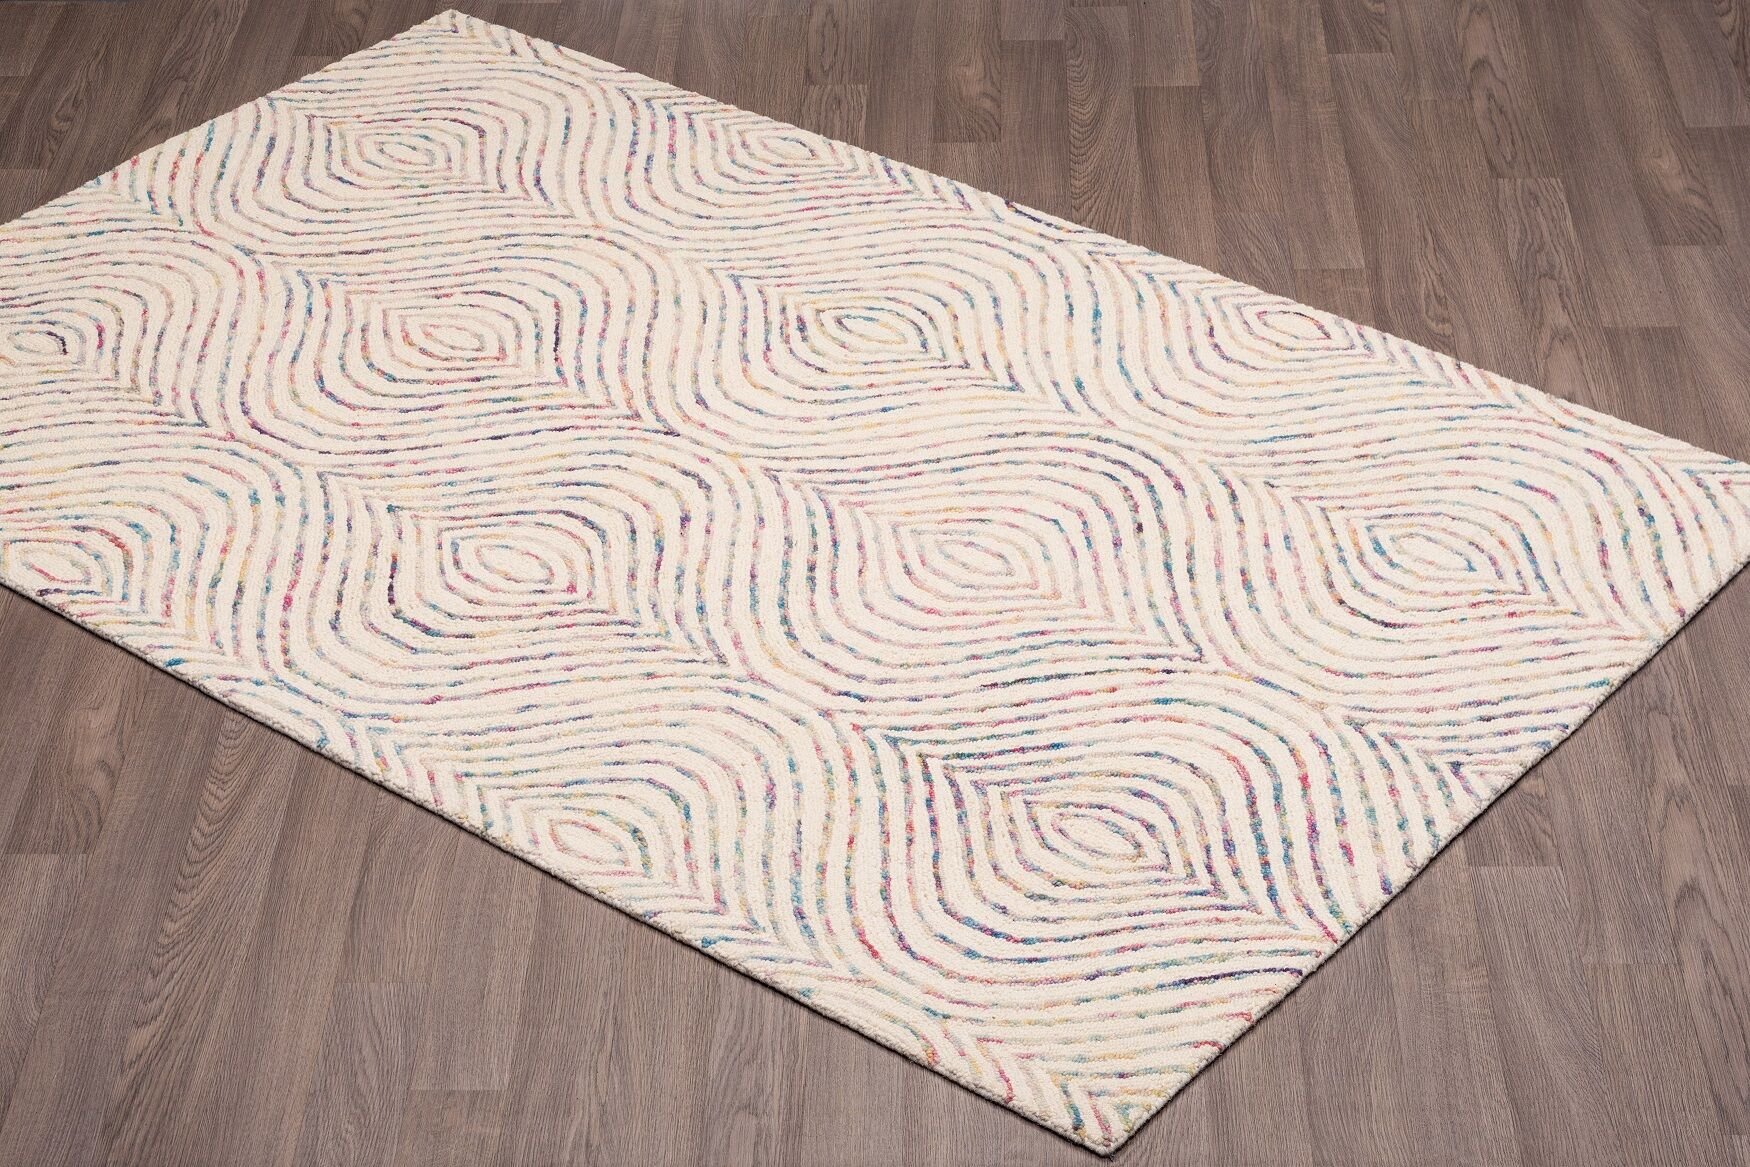 Quiles Hand-Woven Ivory Wool Area Rug Rug Size: Rectangle 5' x 8'